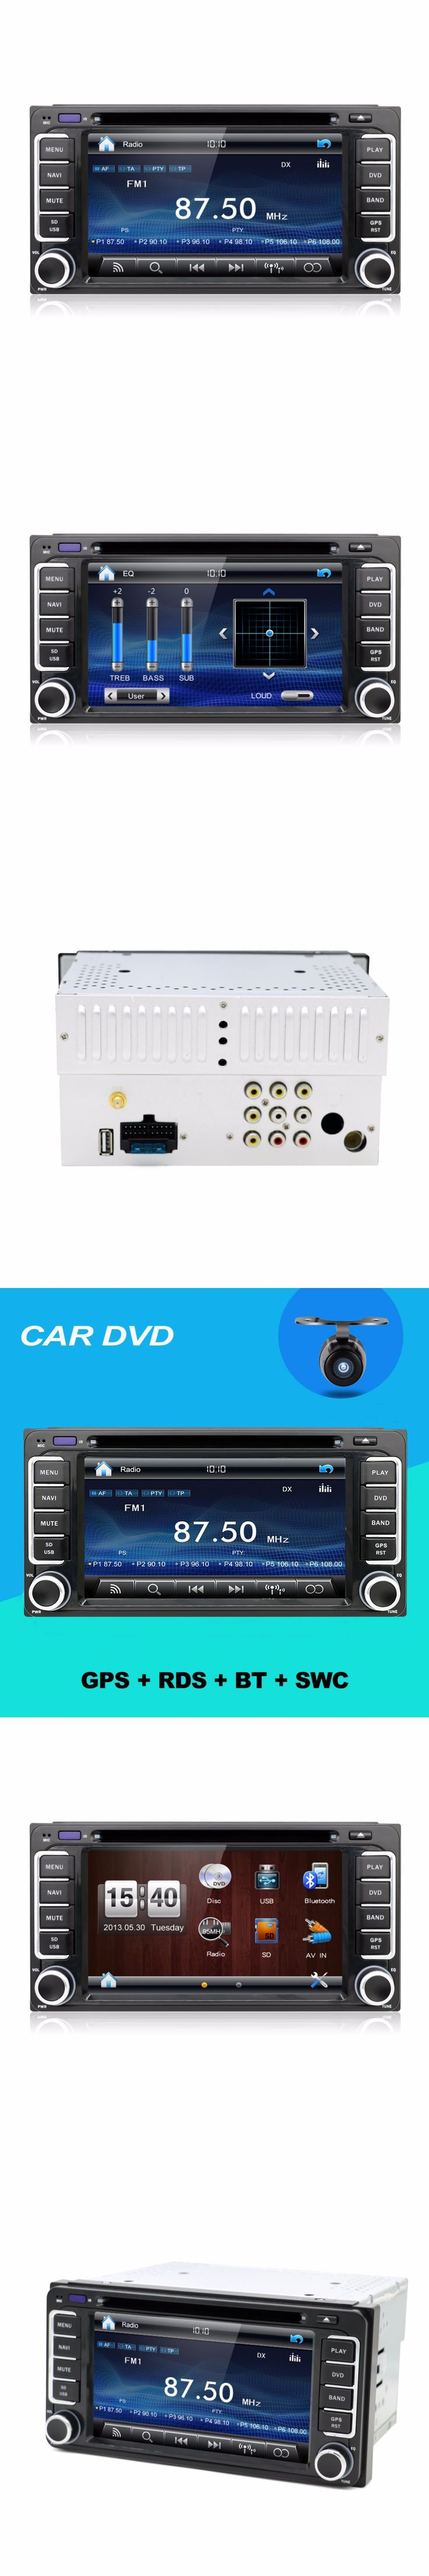 Touch Screen Car DVD GPS Navigation 2DIN For toyota Stereo Radio Bluetooth USB/SD Universal Player audio stereo parking free cam